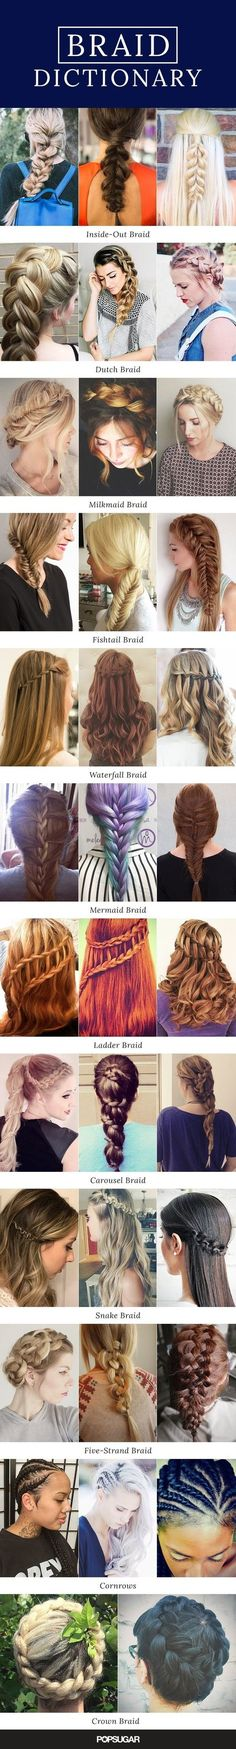 Braid dictionary  Fun and easy ways to find cute go to hairstyles. ♔✨@EstellaSeraphim ♔✨ #EstellaSeraphim ♔✨